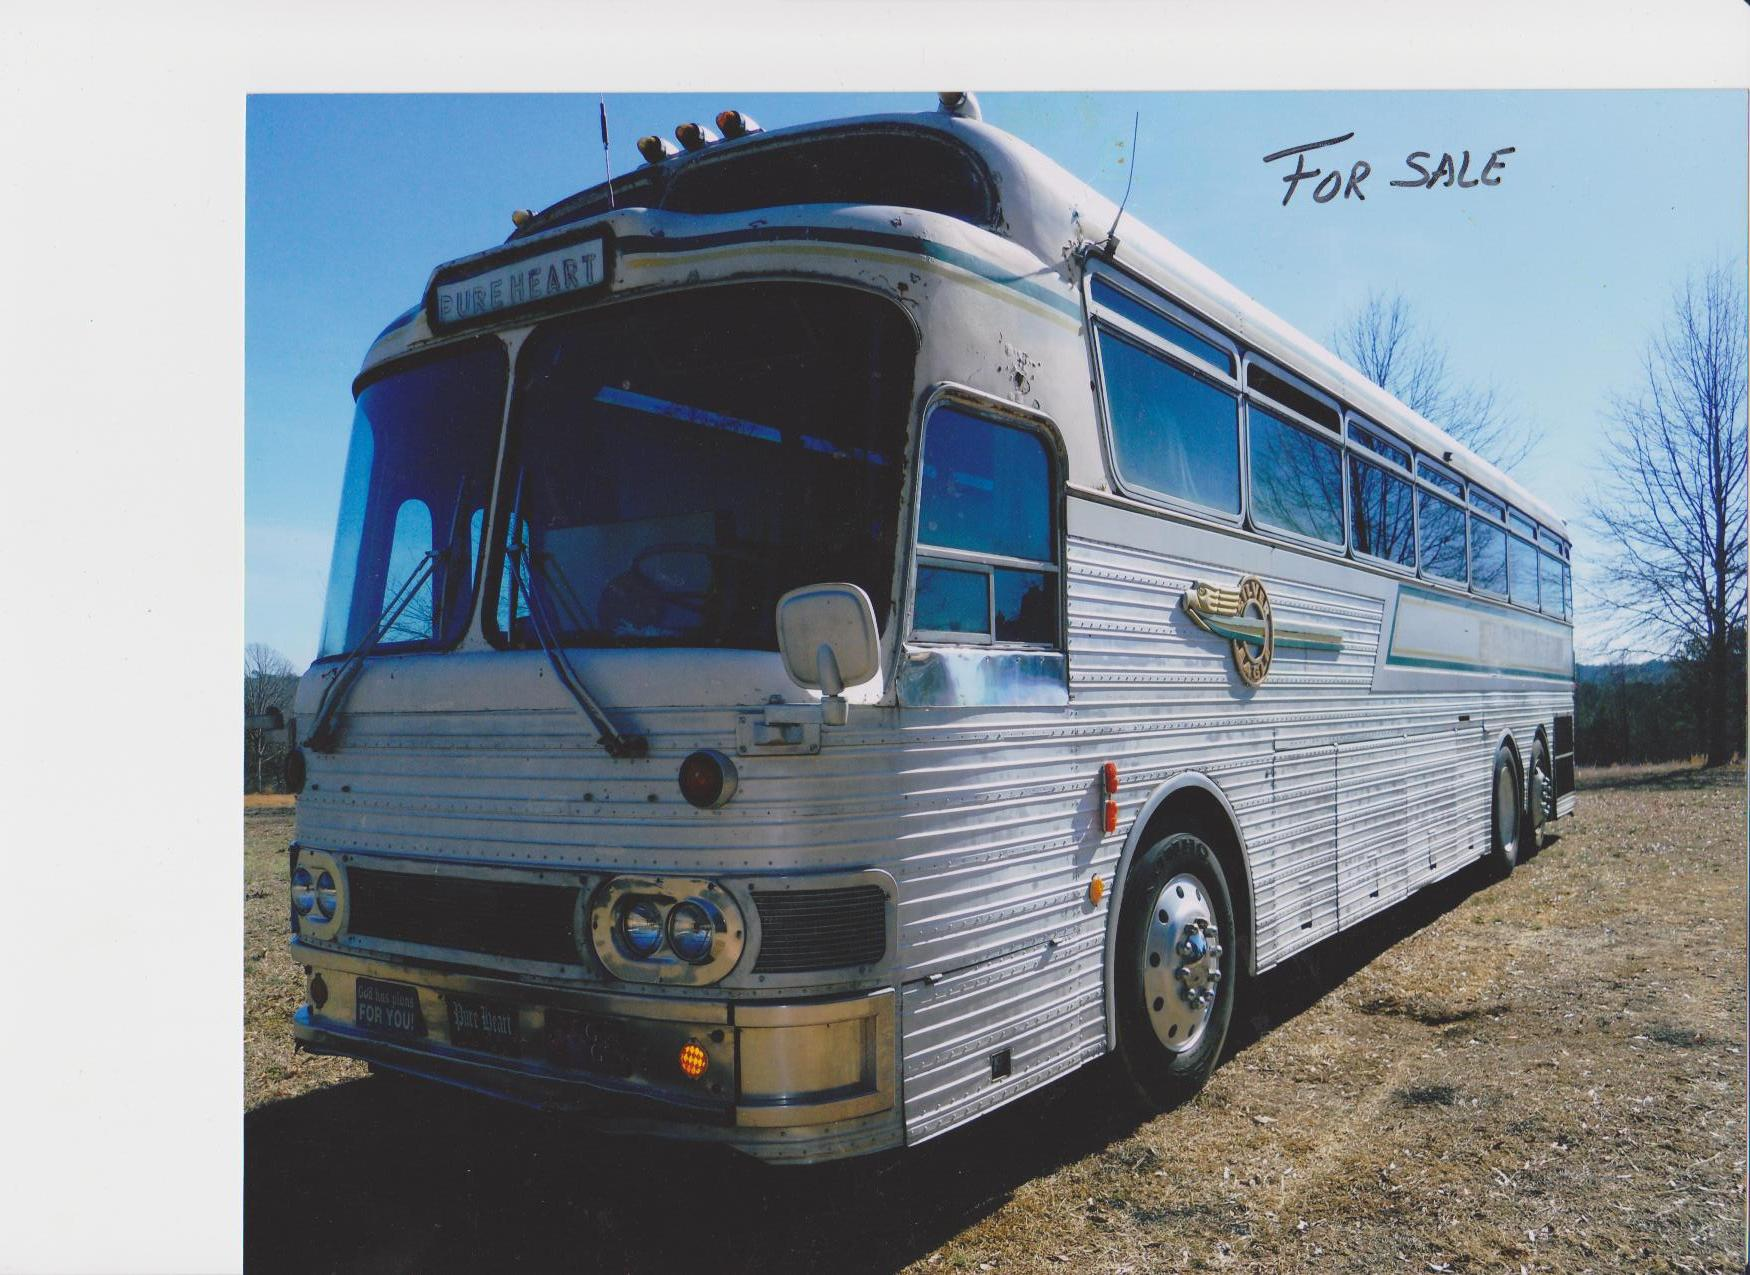 http://usedbusesforsale.net/bus_images/196701continentaltrailways0-640.jpg